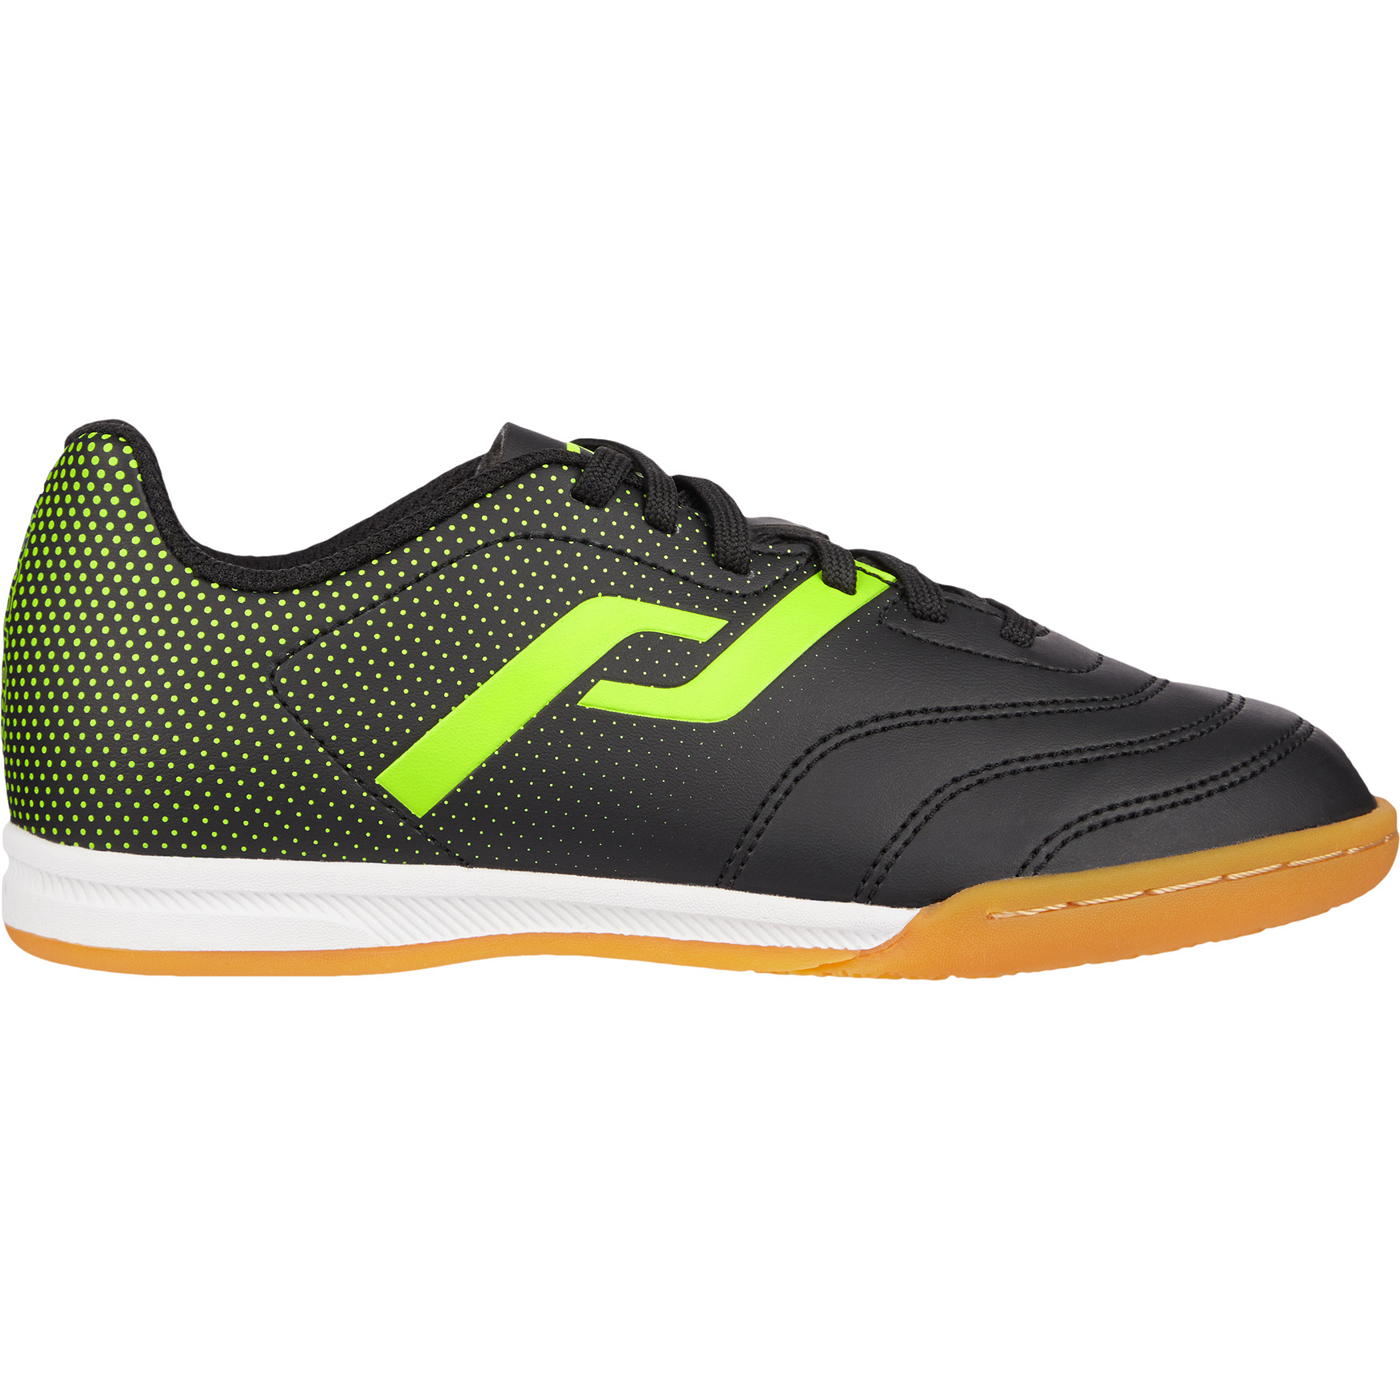 PRO TOUCH Kinder Fußball-Hallenschuhe Classic III IN